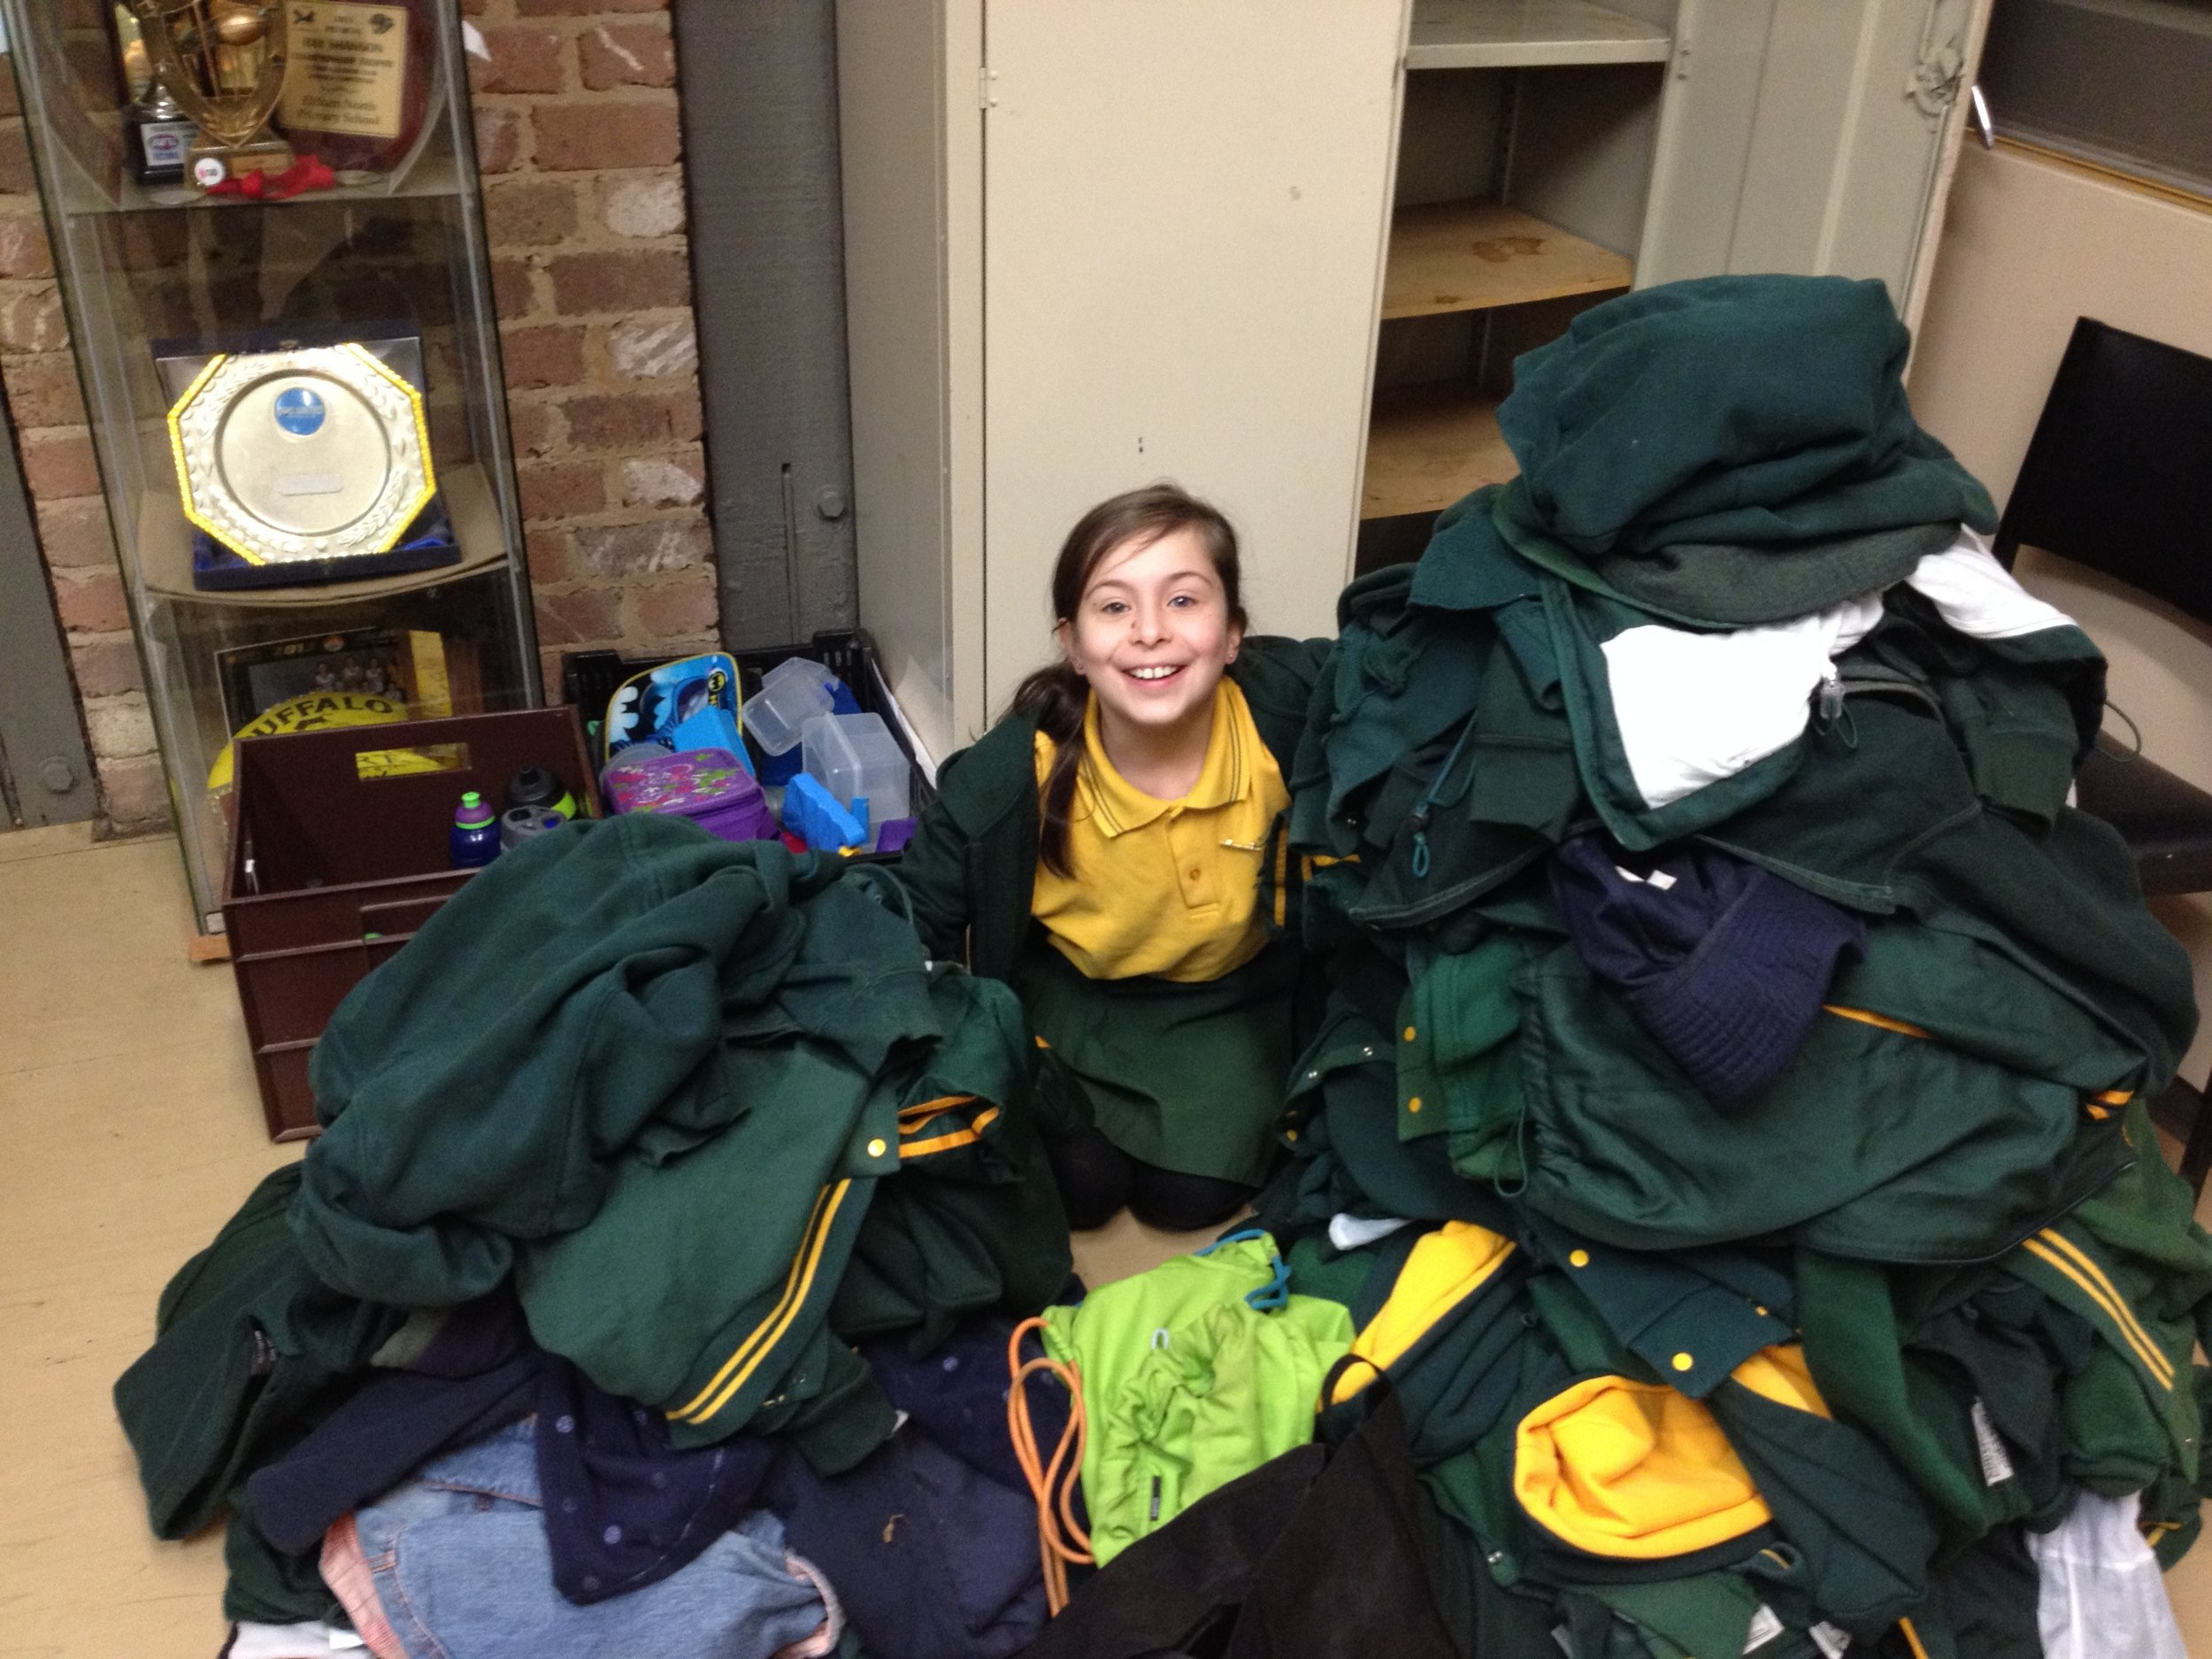 Grace is sitting on the lost property pile